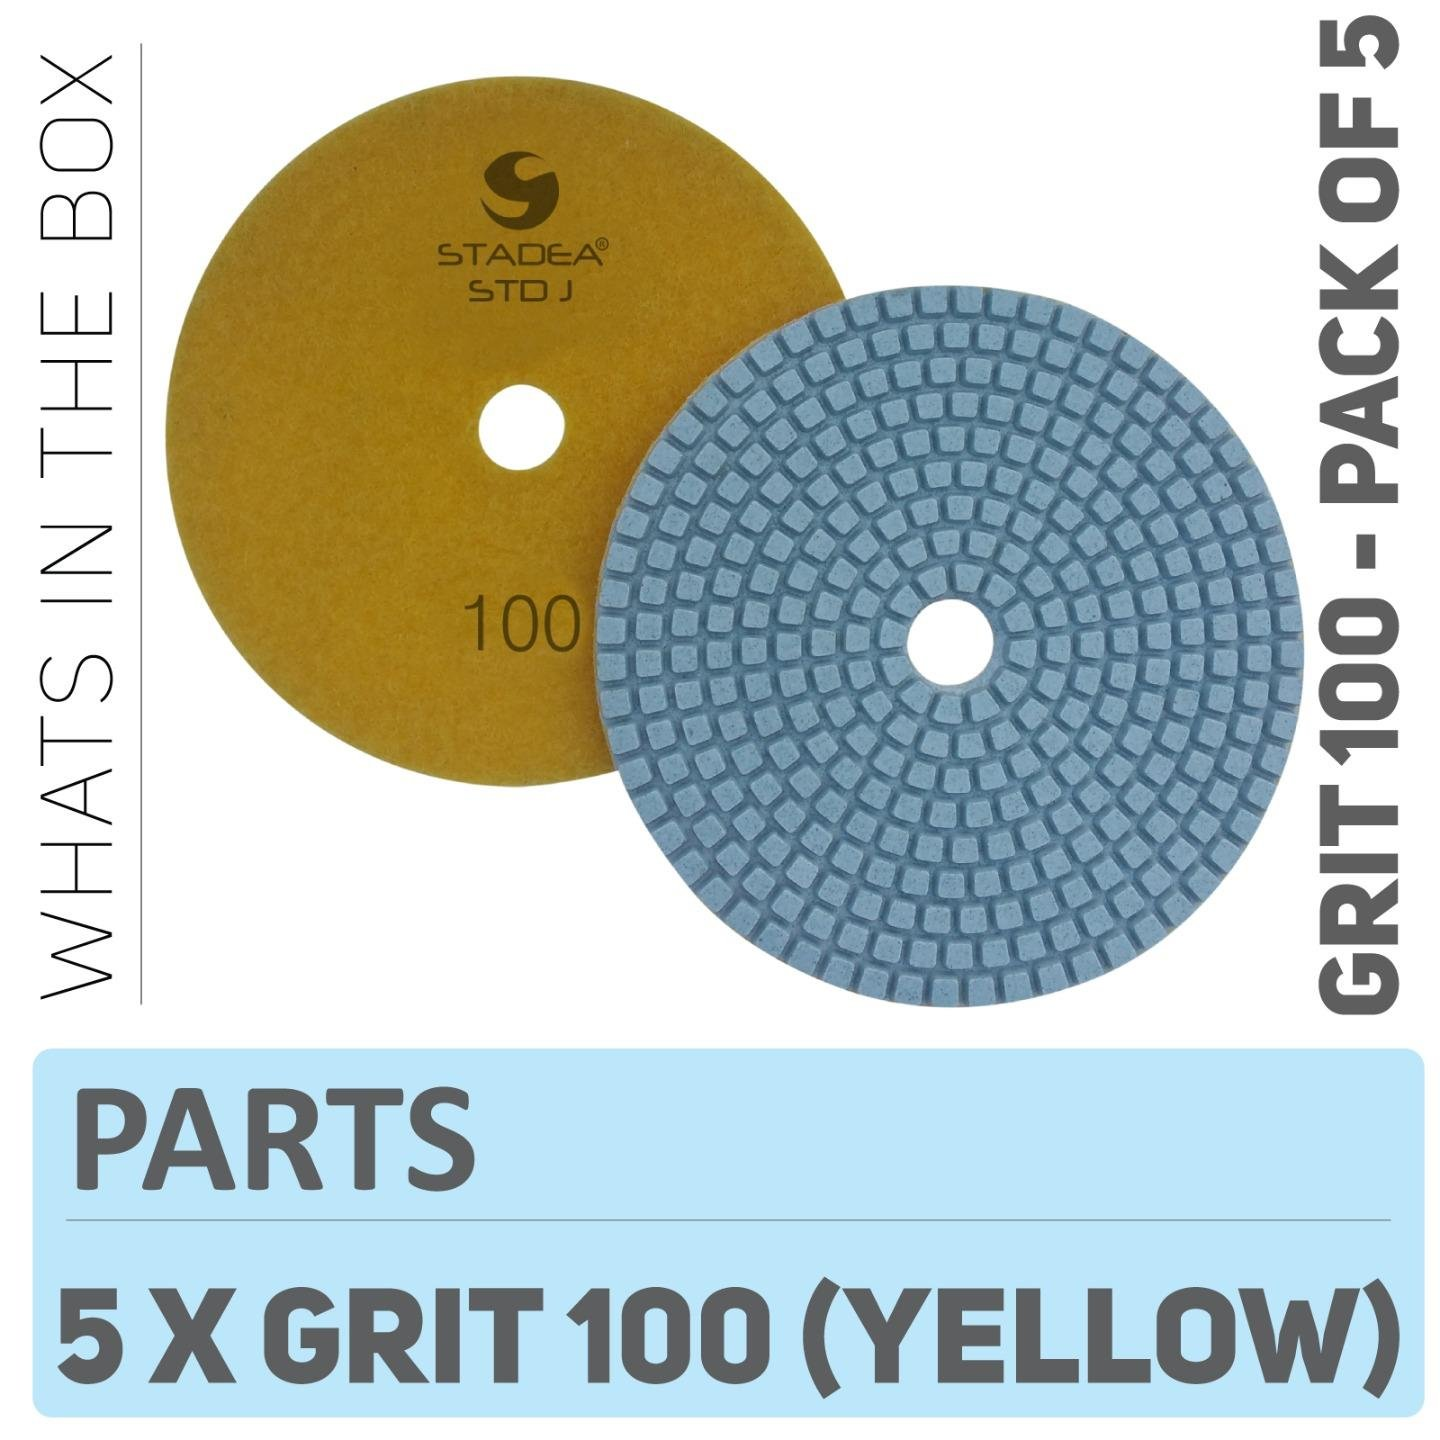 Stadea PPW241D Diamond Polishing Pads 5 Inch - For Concrete Terrazzo Marble Granite Countertop Floor Wet Polishing, Grit 100 - Pack of 5